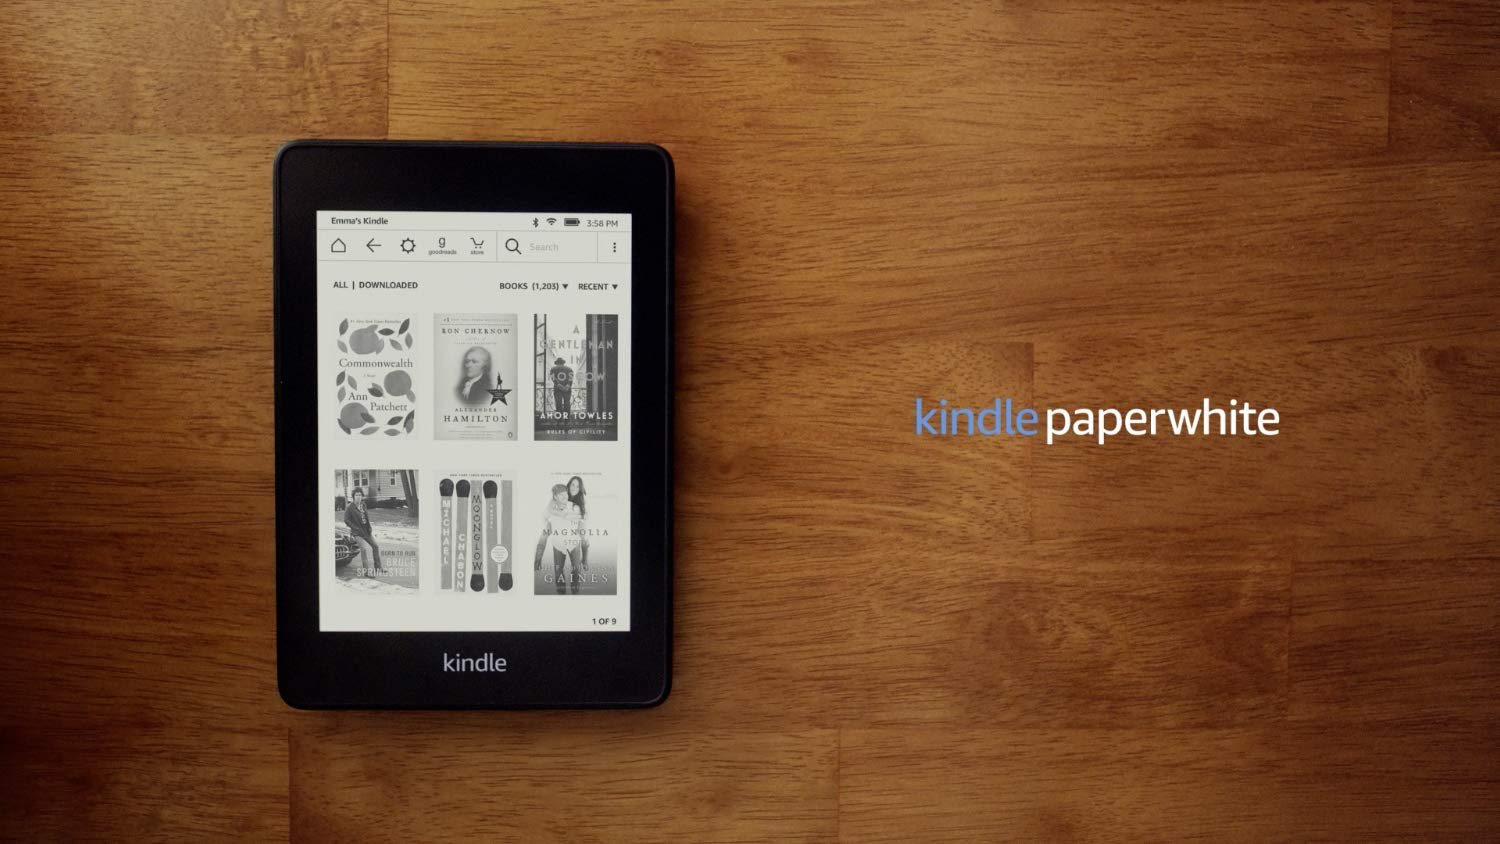 Kindle Paperwhite – 8 GB, Wi-Fi, Includes Special Offers. Best Gift Idea